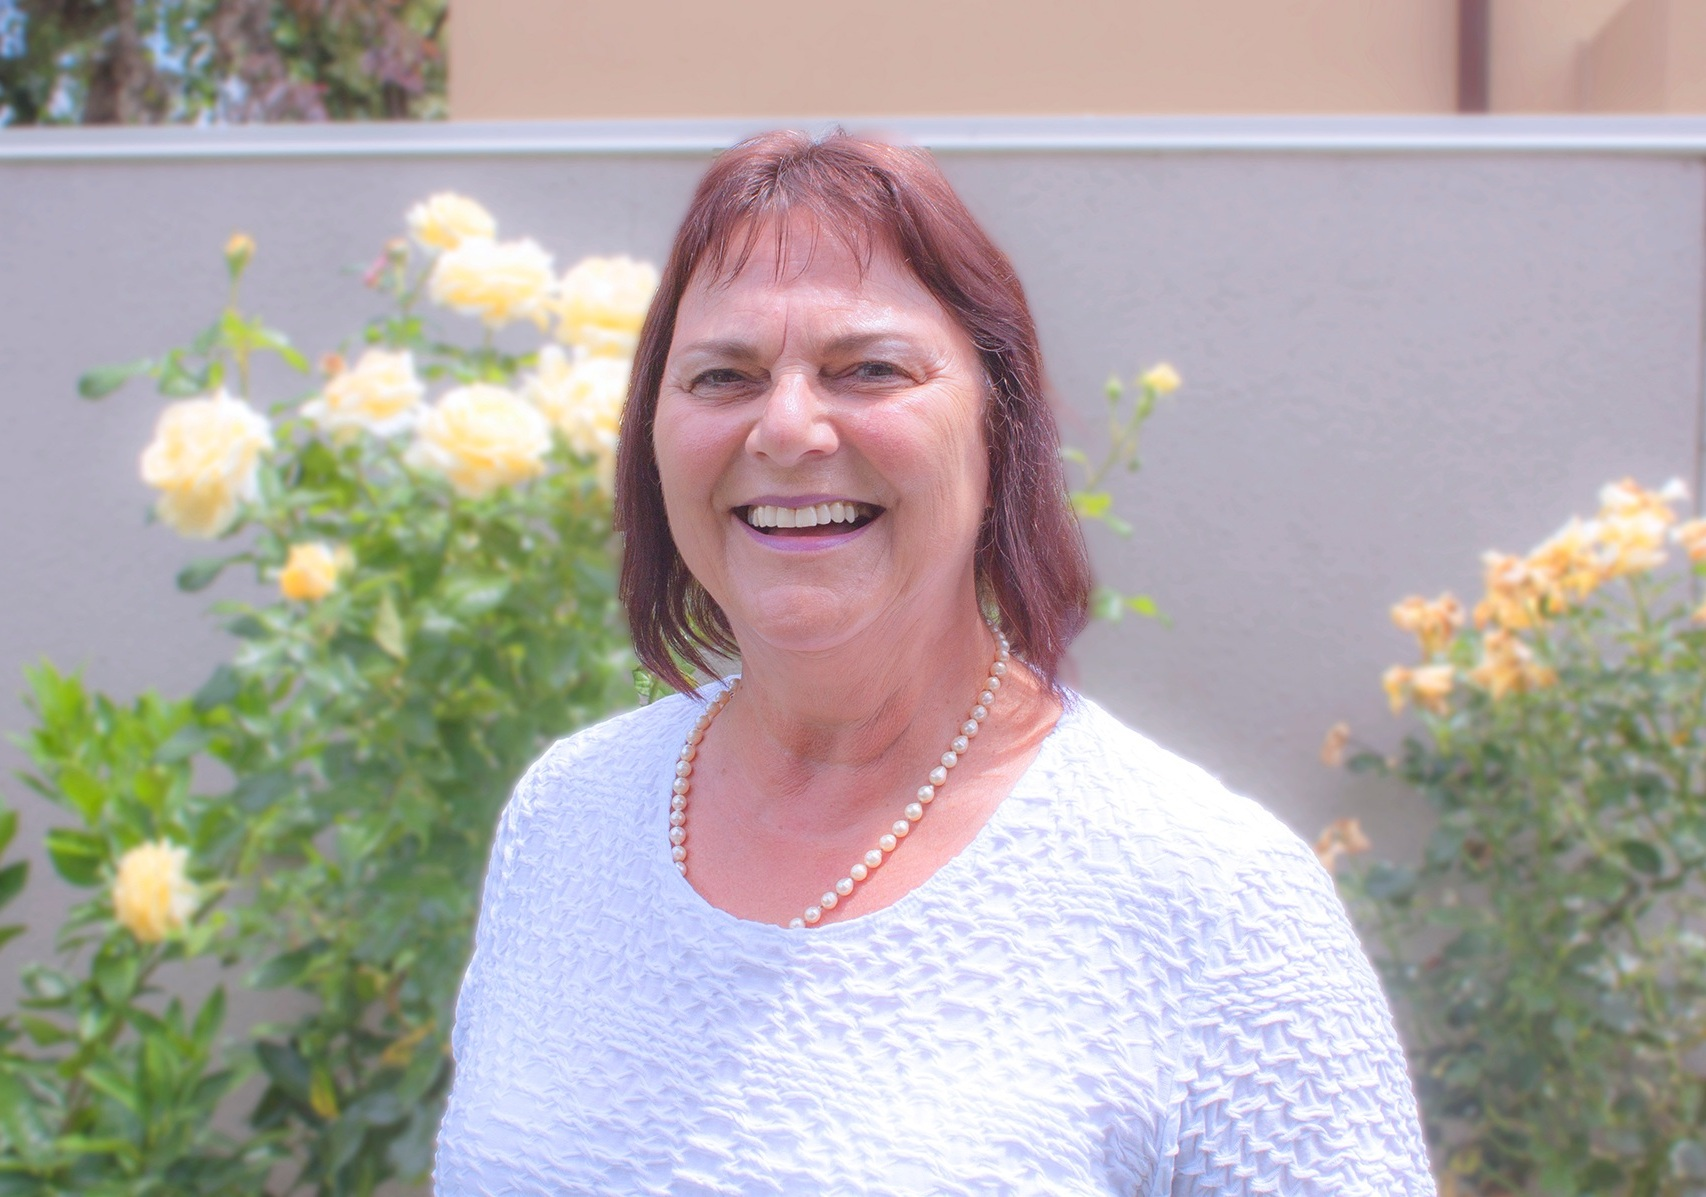 About us - Learn more about Elda and the story of Golden Years Homecare.